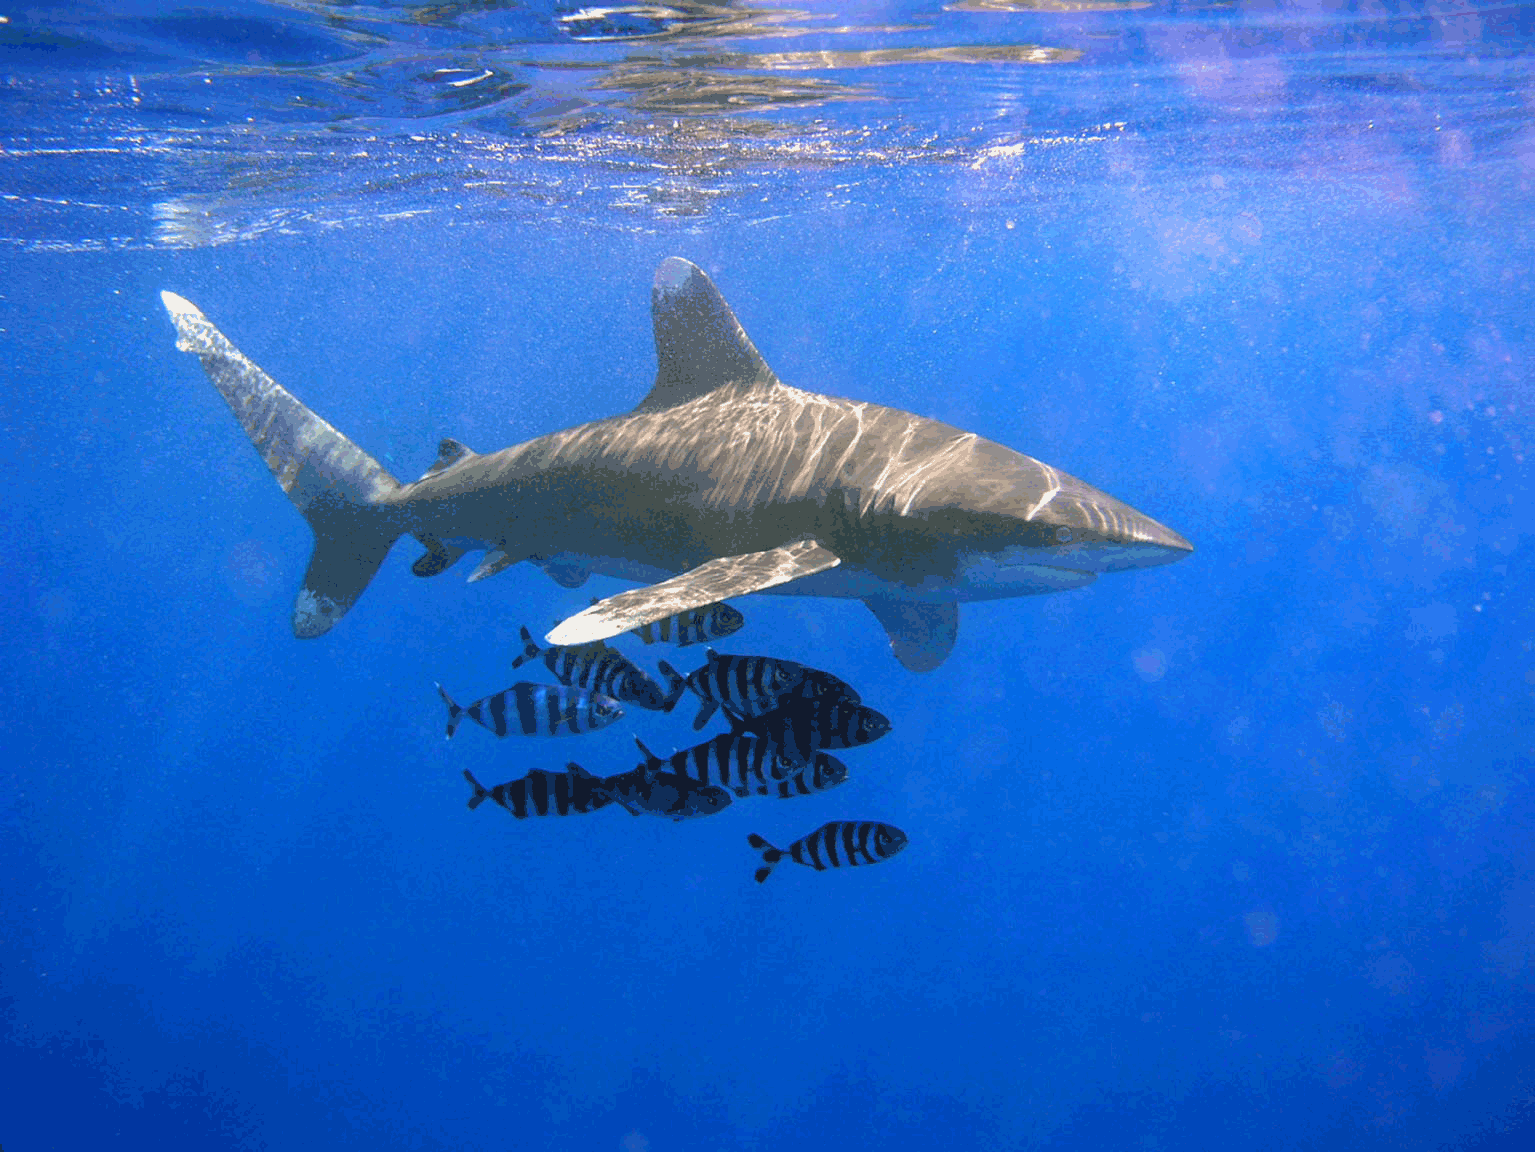 http://upload.wikimedia.org/wikipedia/commons/2/24/Oceanic_Whitetip_Shark.png